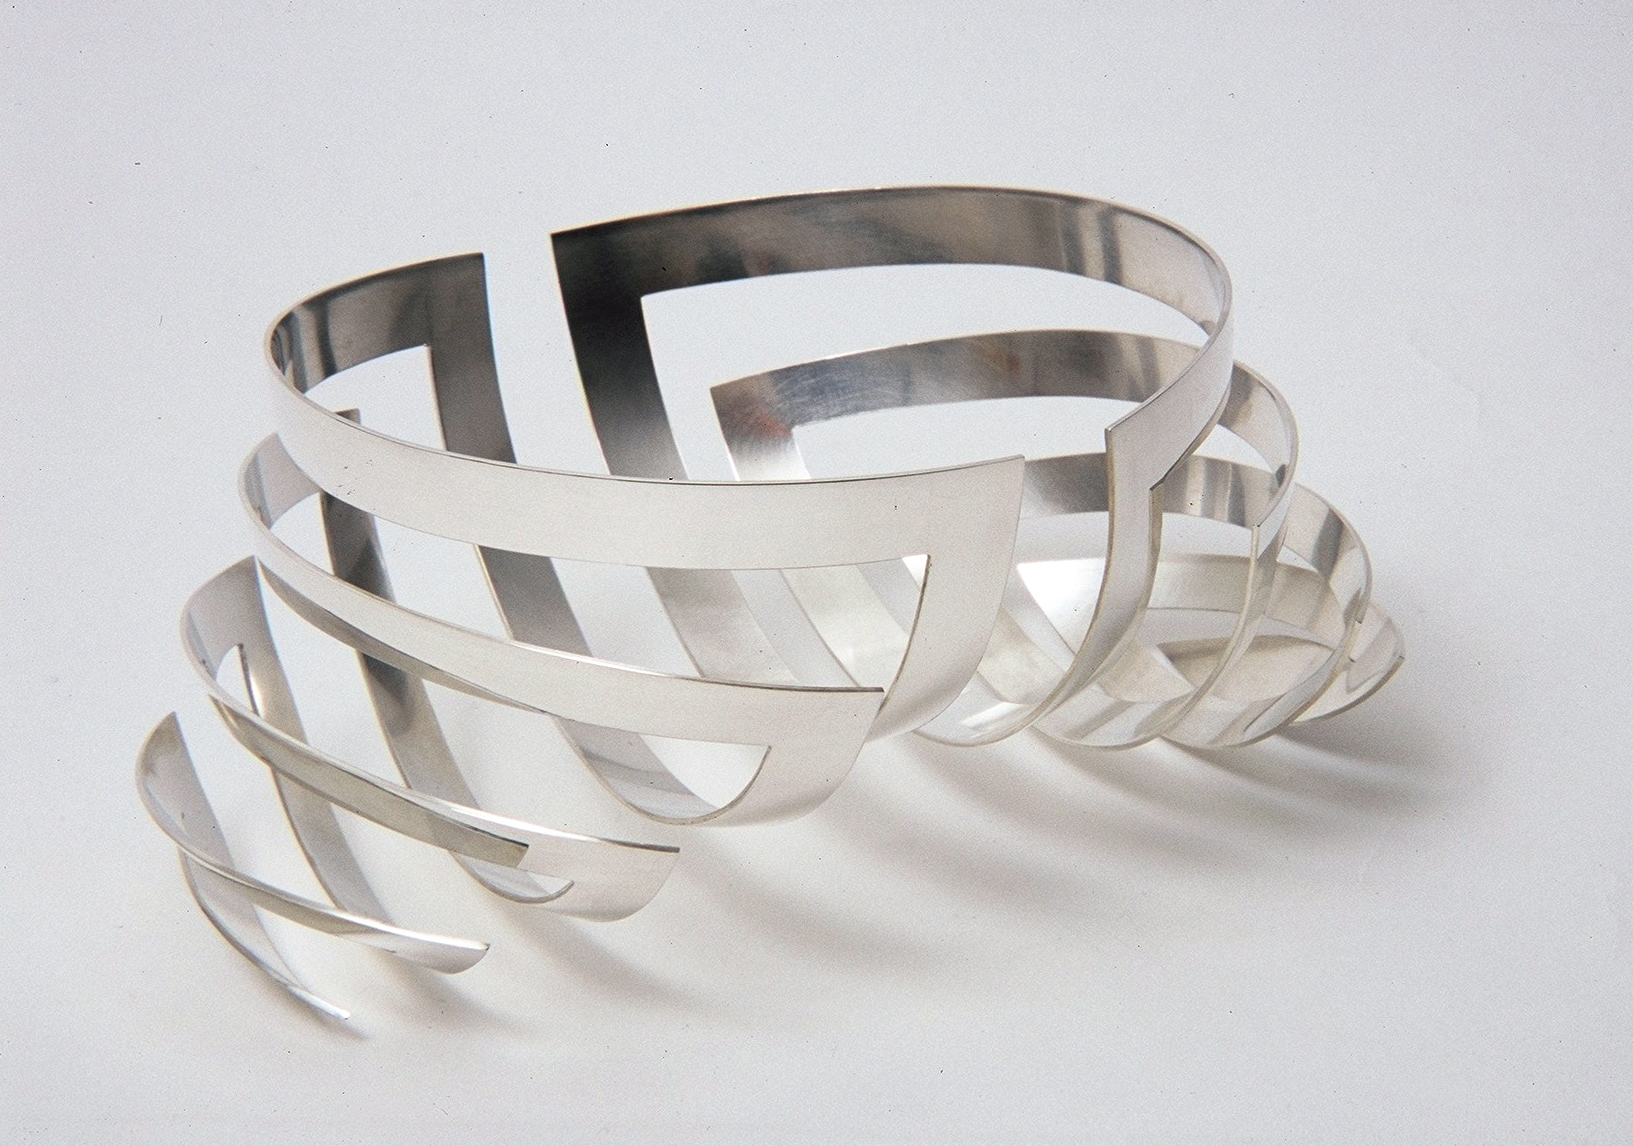 'Nervous Bowl' in sterling silver